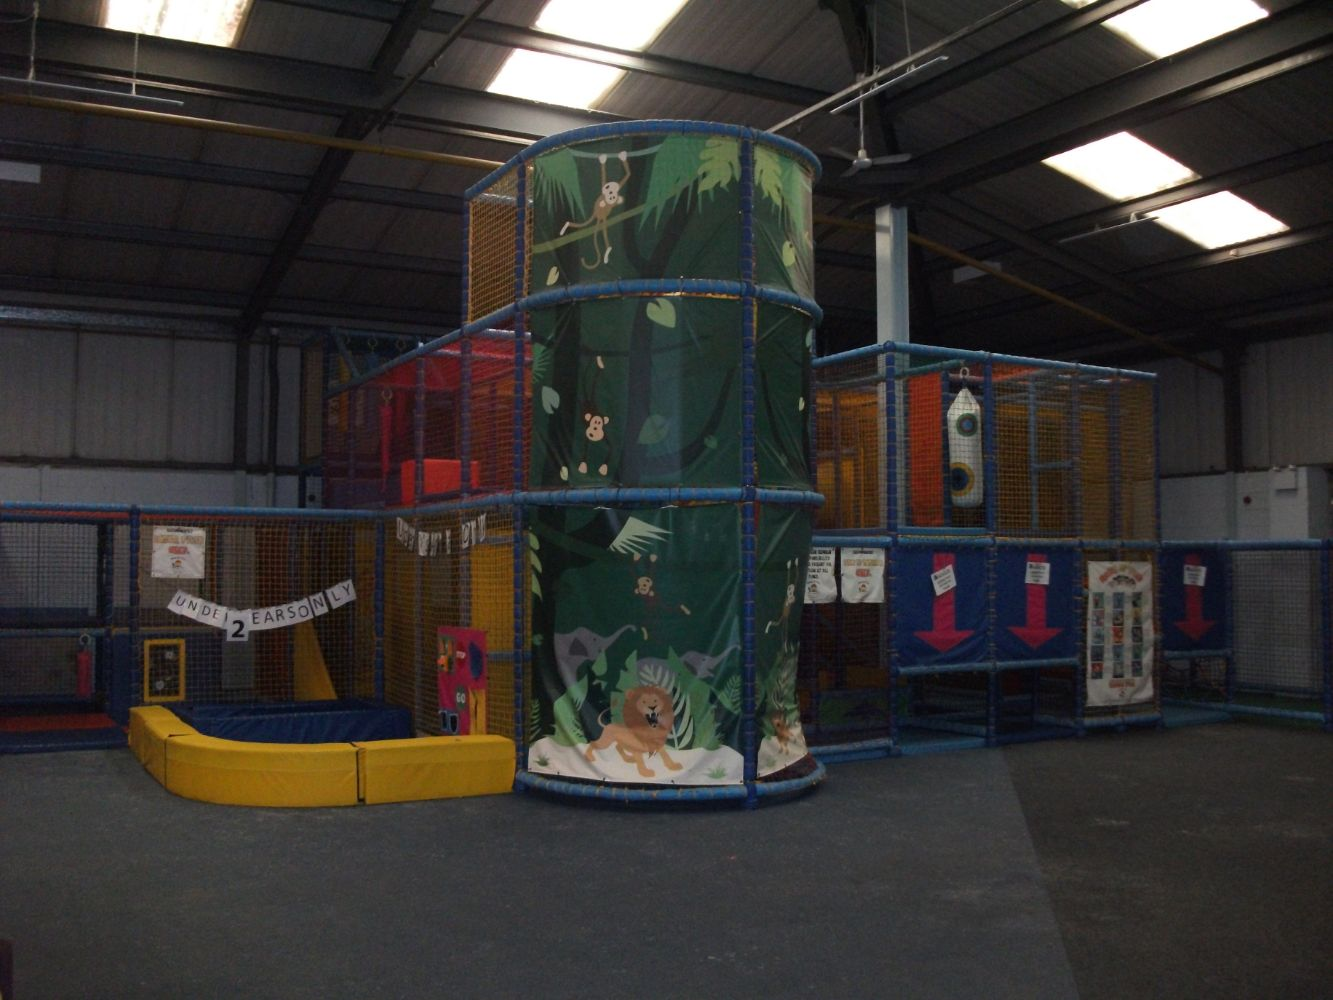 Assets of an Indoor Children's Soft Play Centre